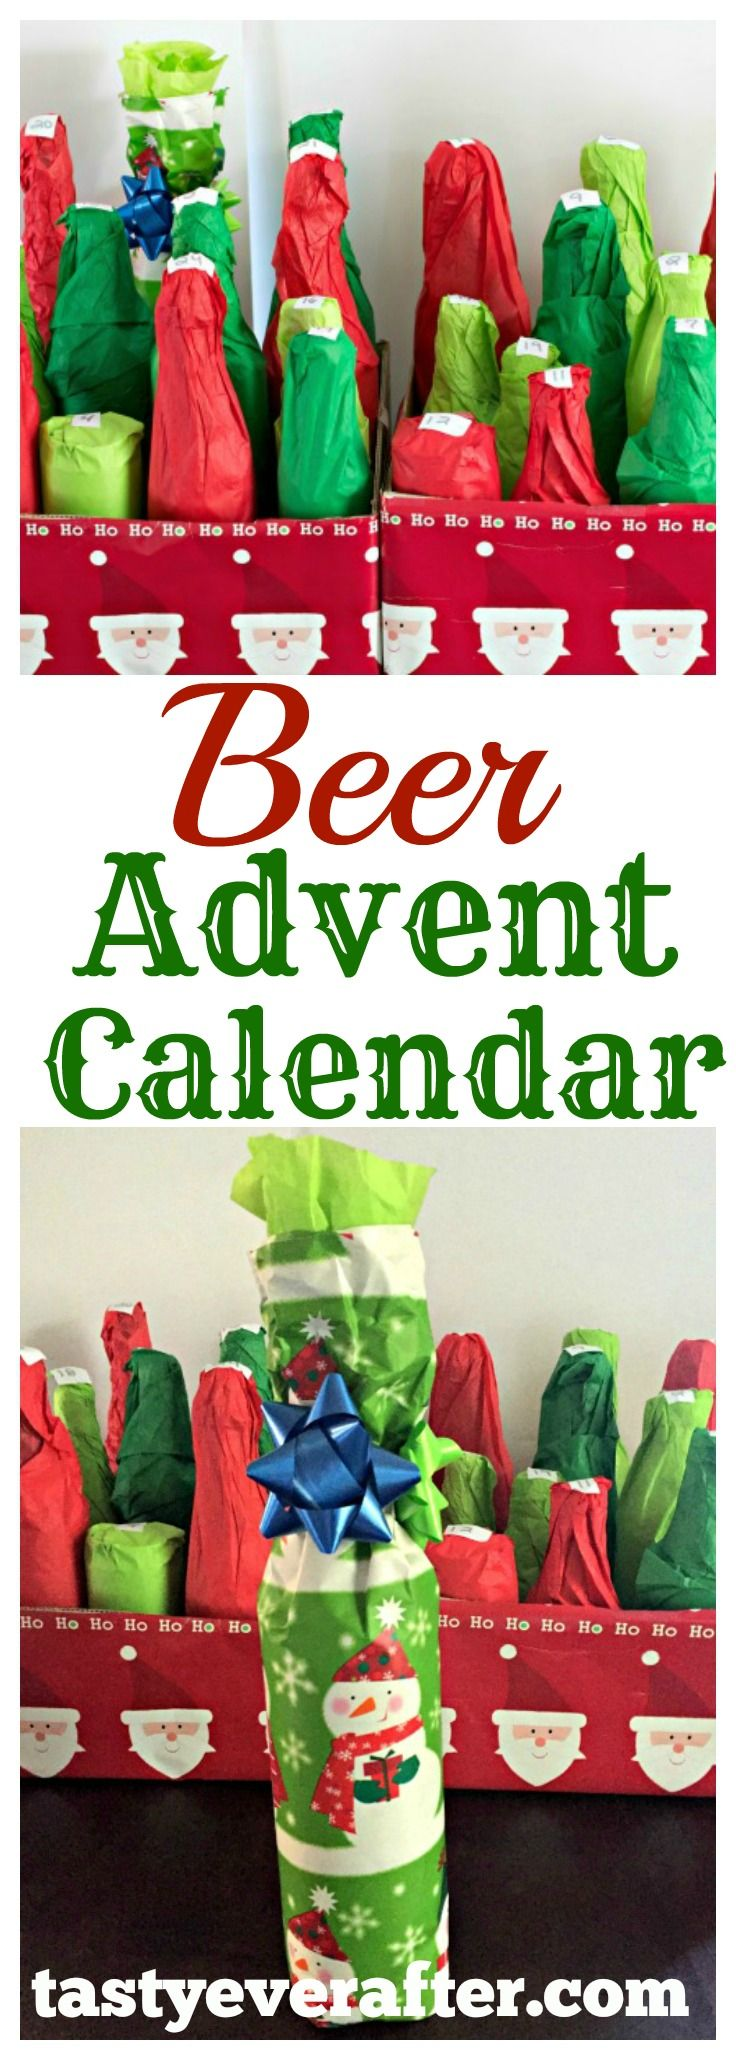 Need a unique Christmas gift for the craft beer lovers in your life?  Make a homemade Beer Advent Calendar and give them a beer once a day for 25 days!